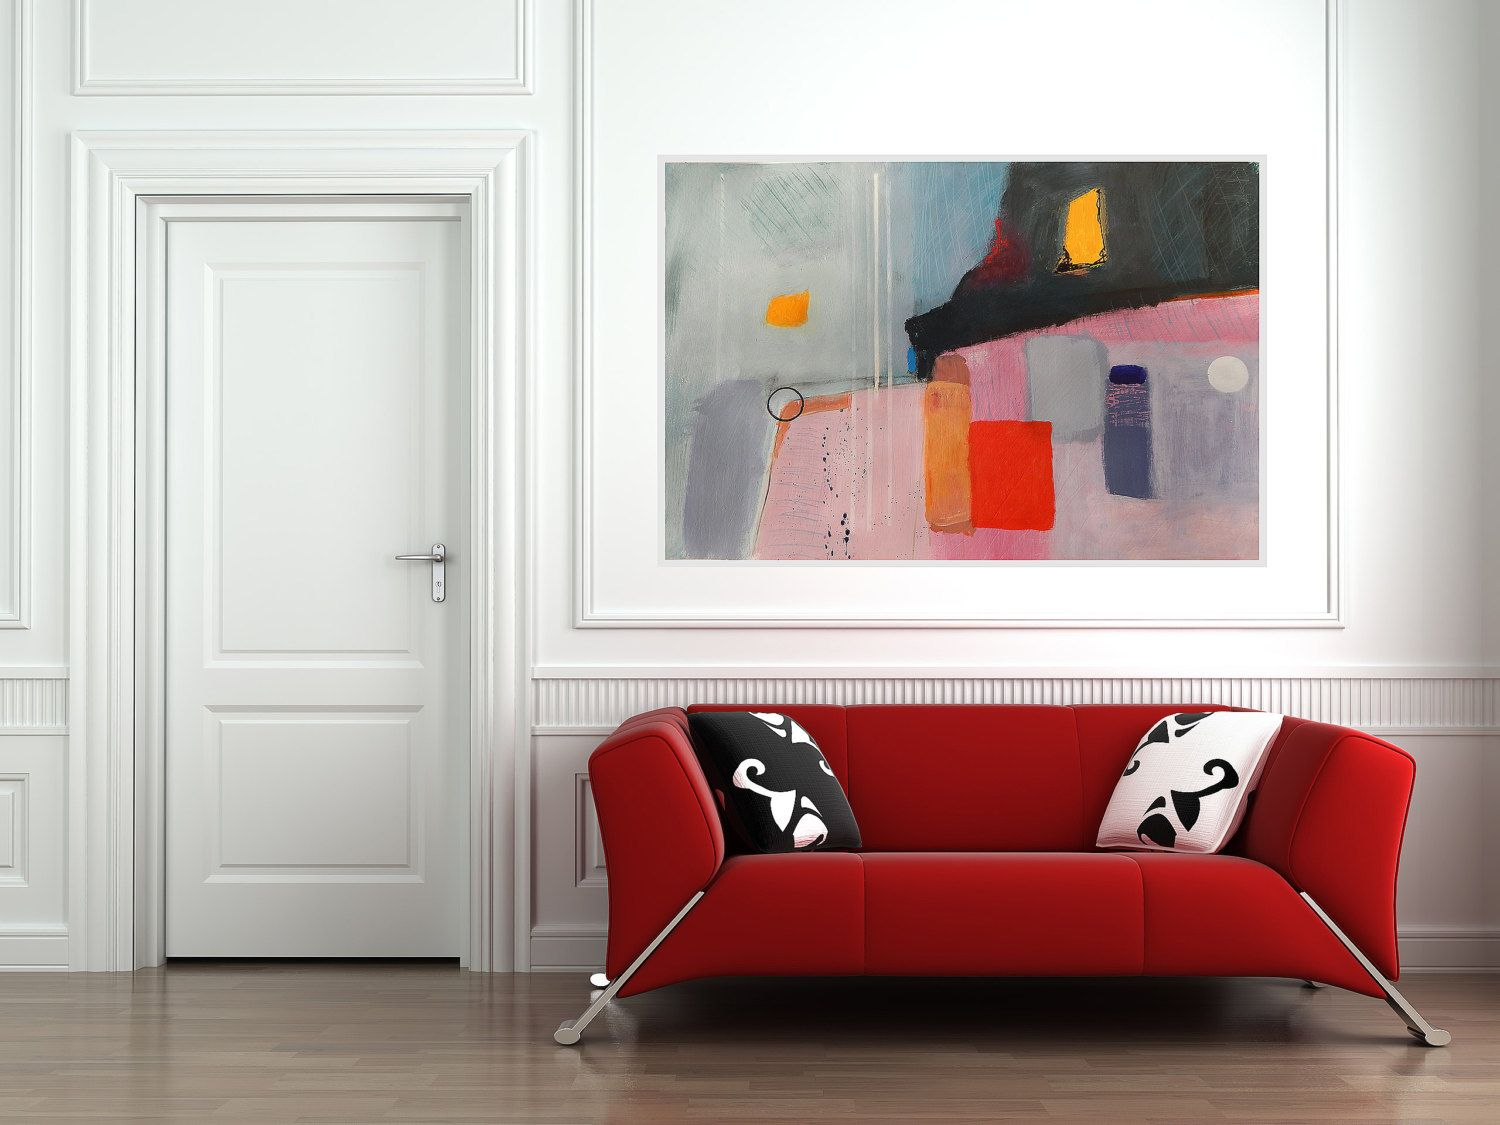 Wall art 100 x 70 - Modern Big Artwork Red Pink Black Grey Purple White Abstract Art Large Painting Contemporary Colorful Modern